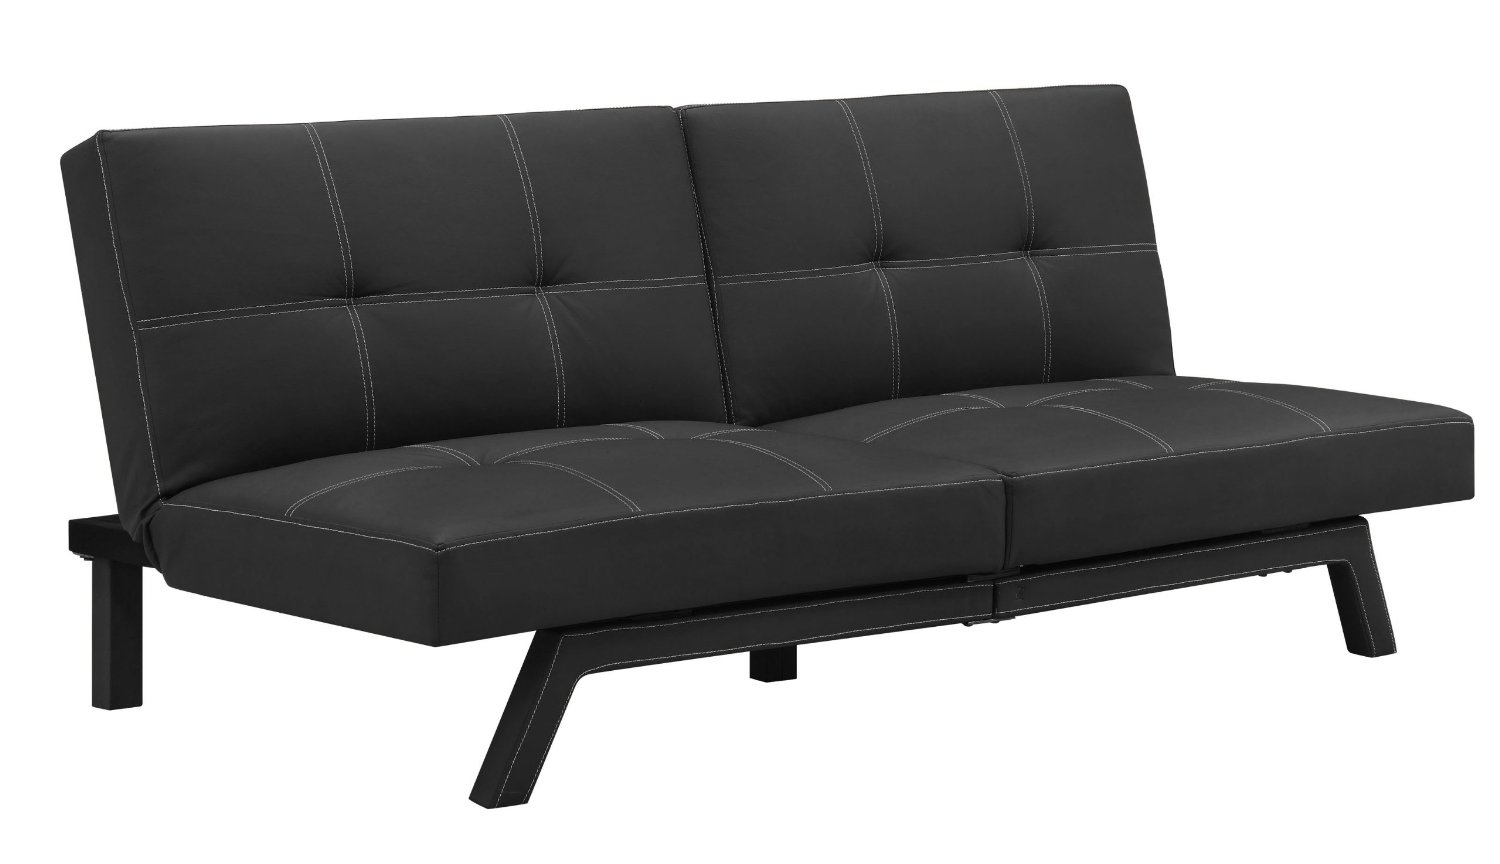 Cheap Futons In Black With Modern Design For Home Furniture Ideas